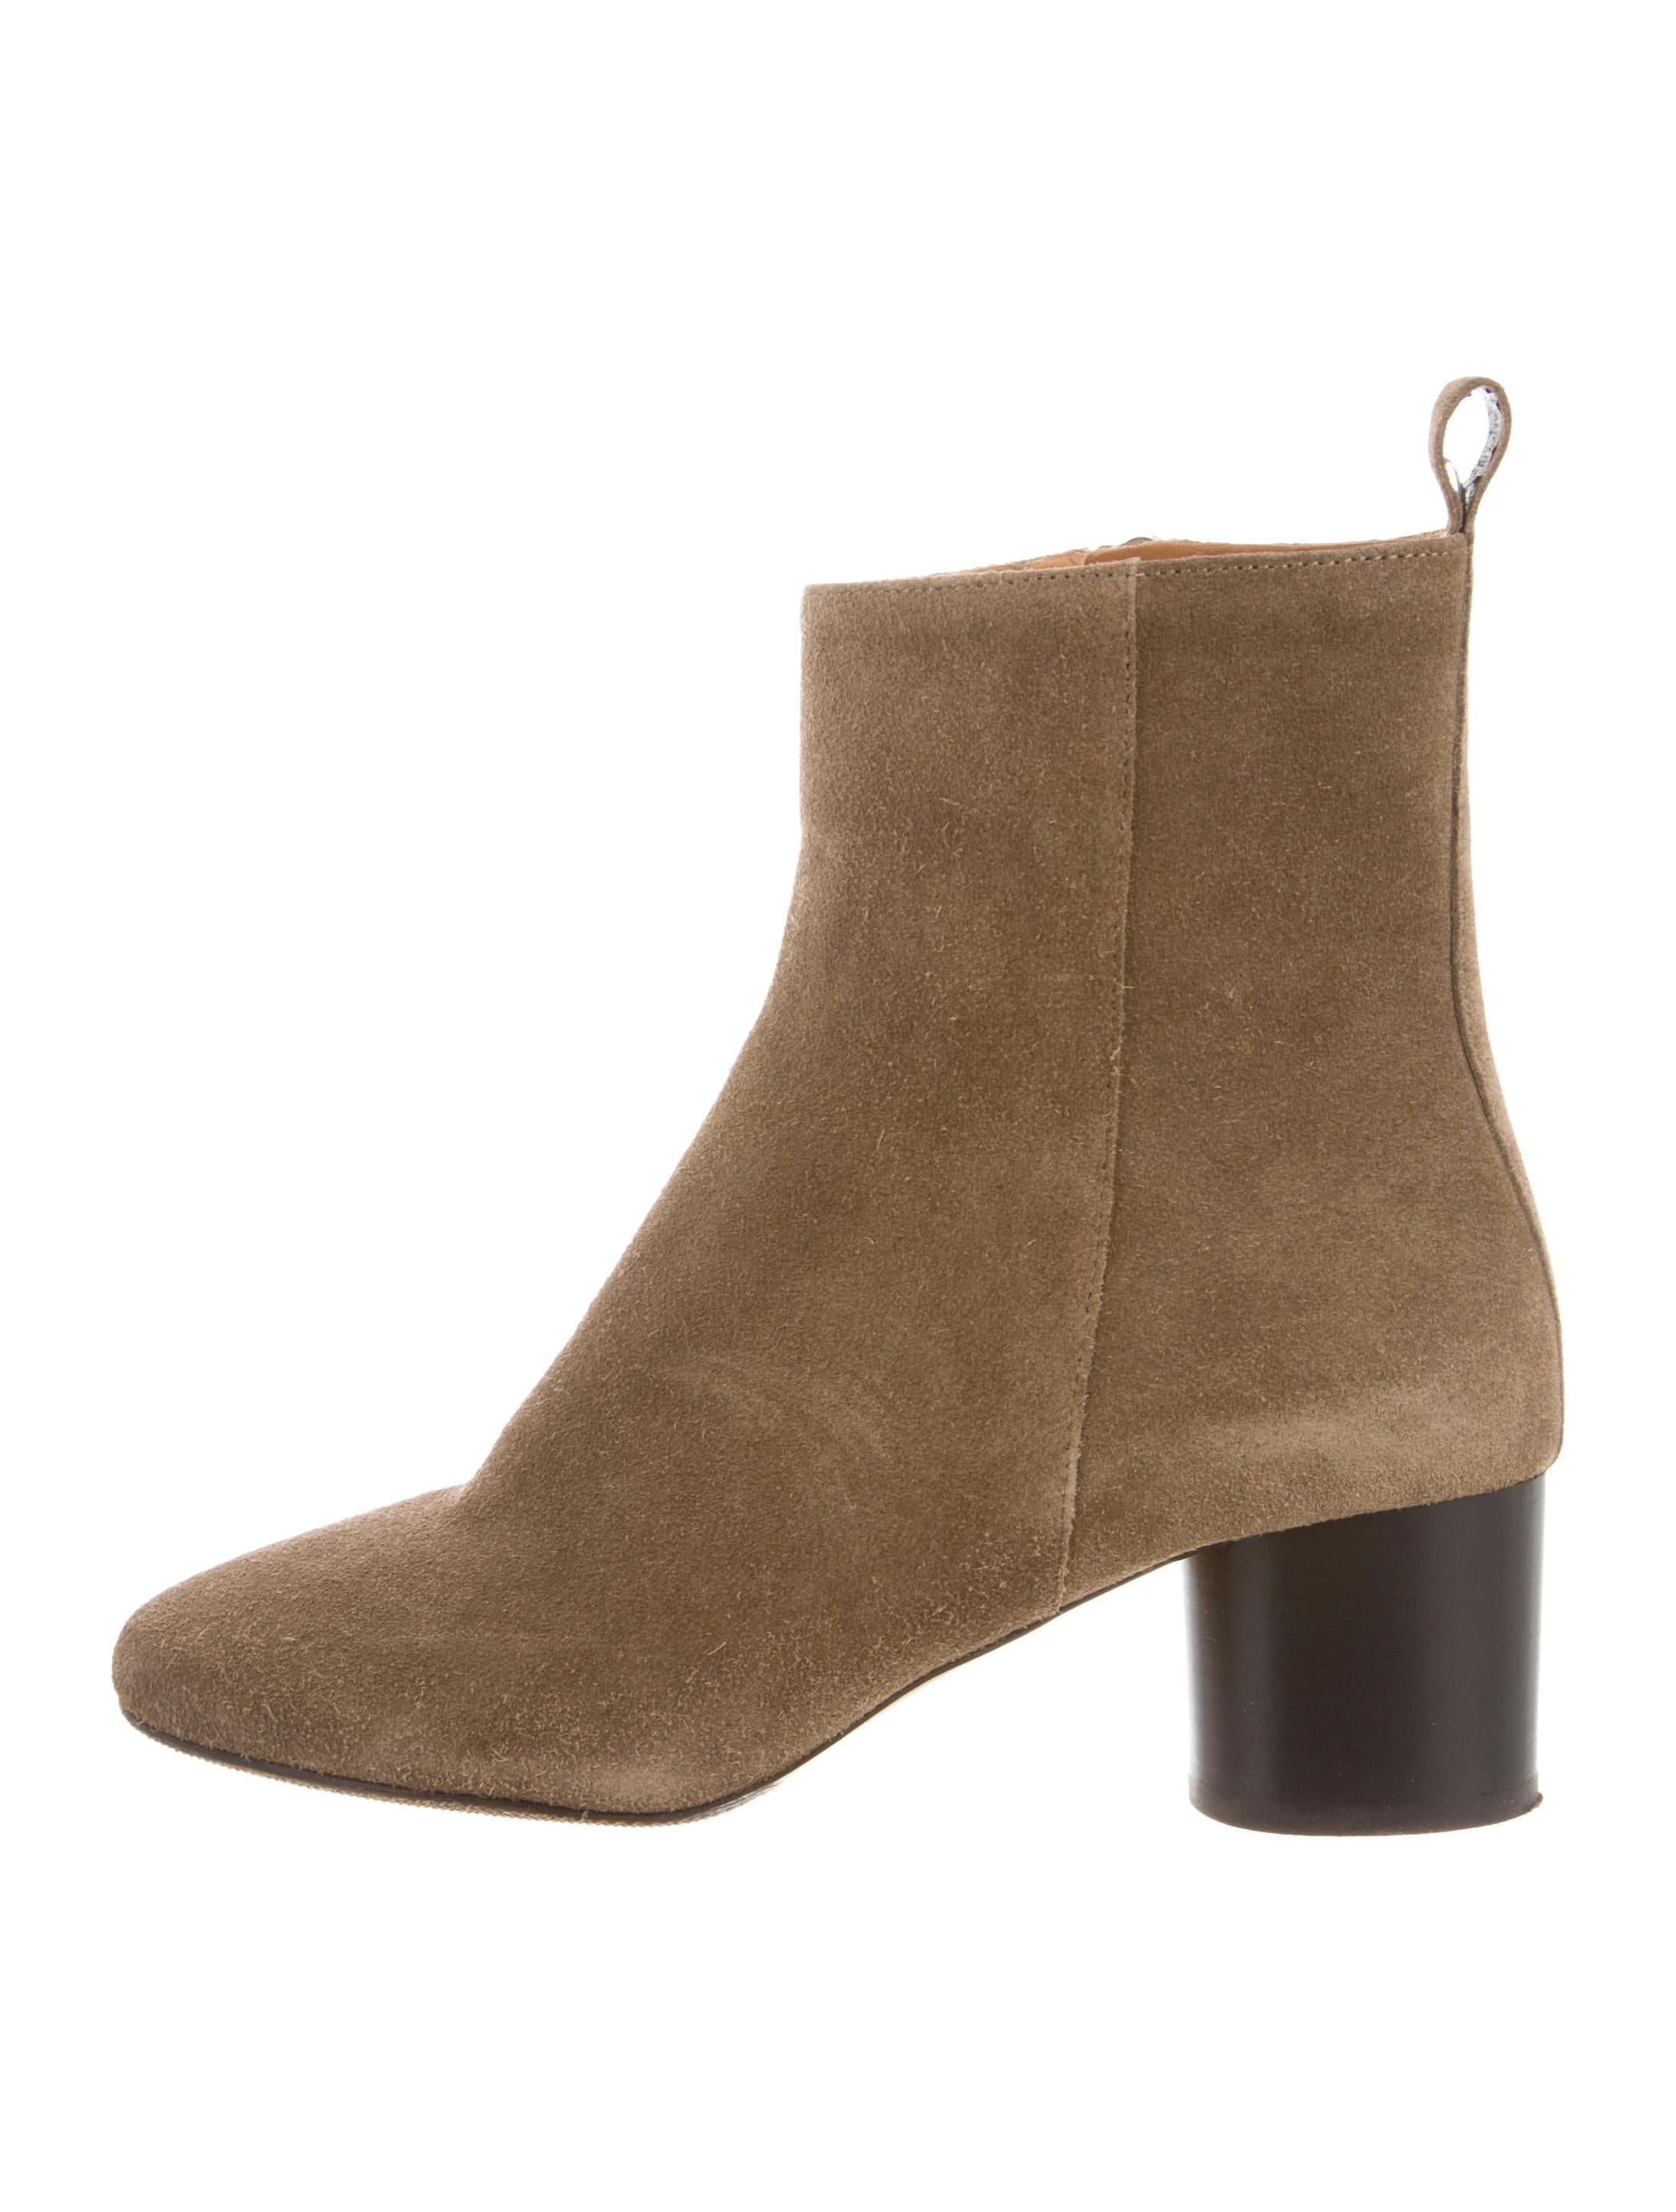 Étoile Isabel Marant Suede Round-Toe Ankle Boots comfortable cheap online clearance big sale online store many kinds of cheap price clearance online amazon F7Hr5OL